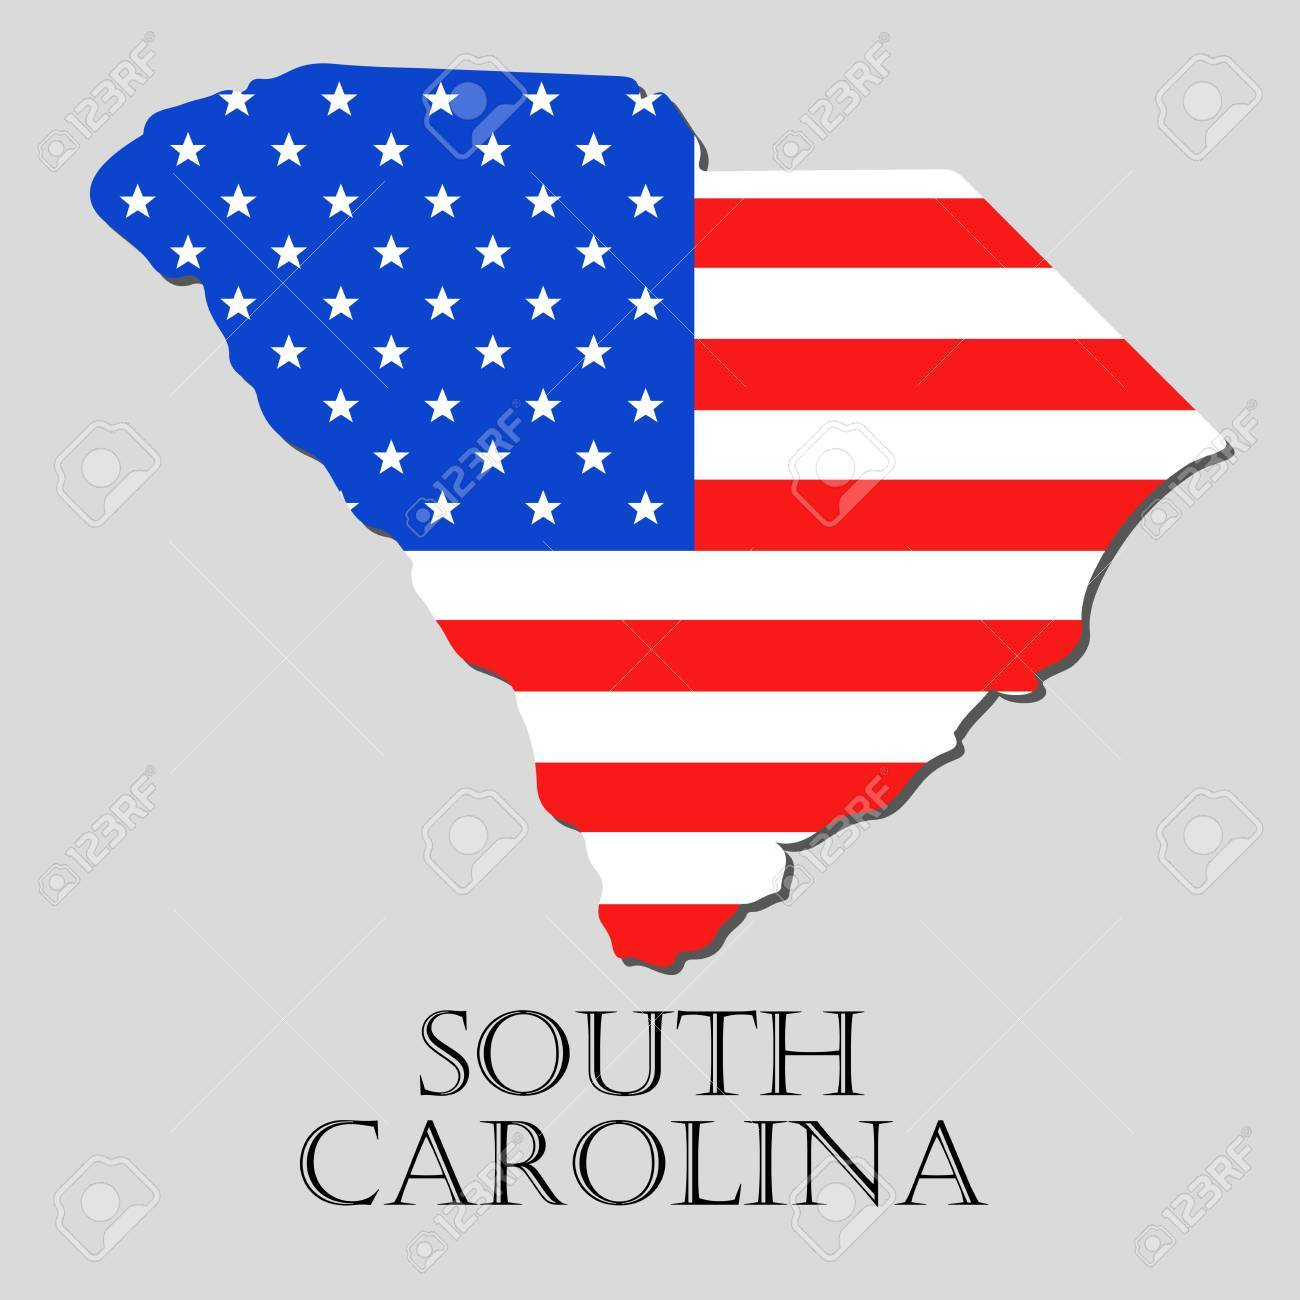 Map Of The State Of South Carolina And American Flag Illustration - South america map and flags